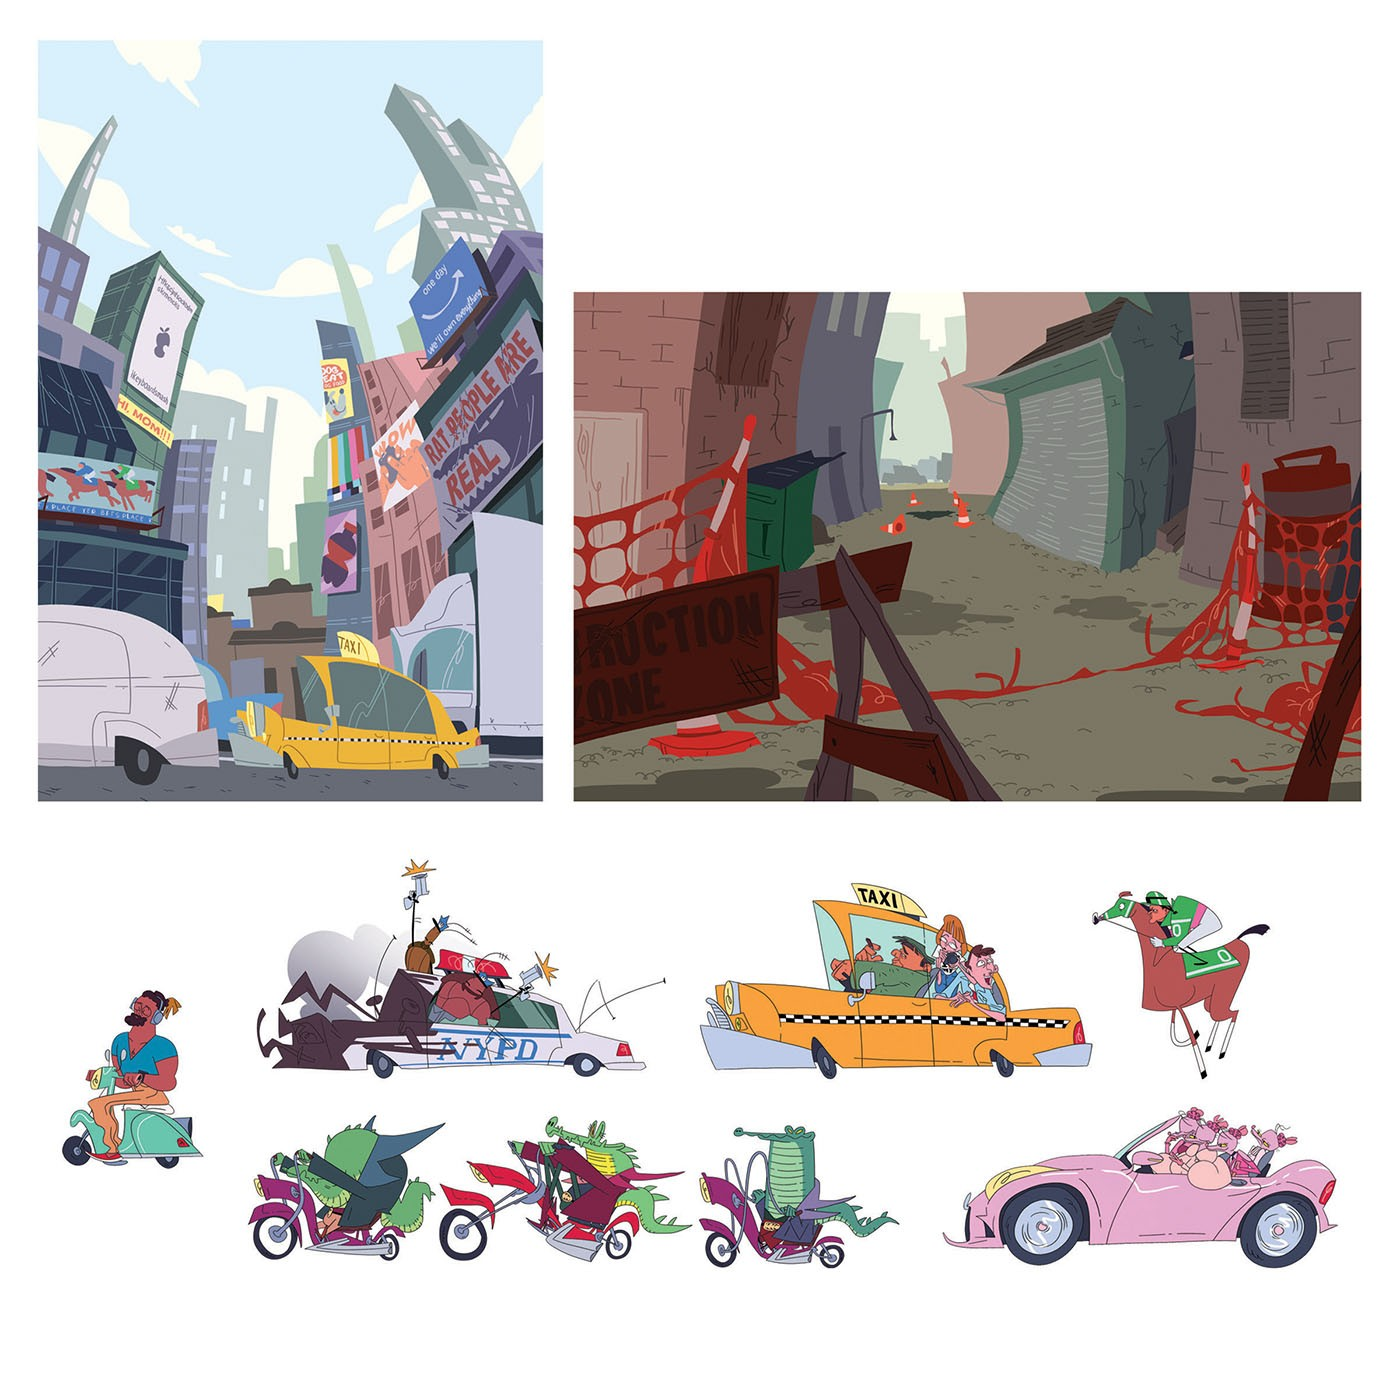 Sixteen stylized characters consisting of rat, alligator, and cockroach humanoids, a hipster, a taxi driver and his two passengers, and a jockey. Along with the characters are their vehicles including cars, motorcycles, and a horse. The next page features